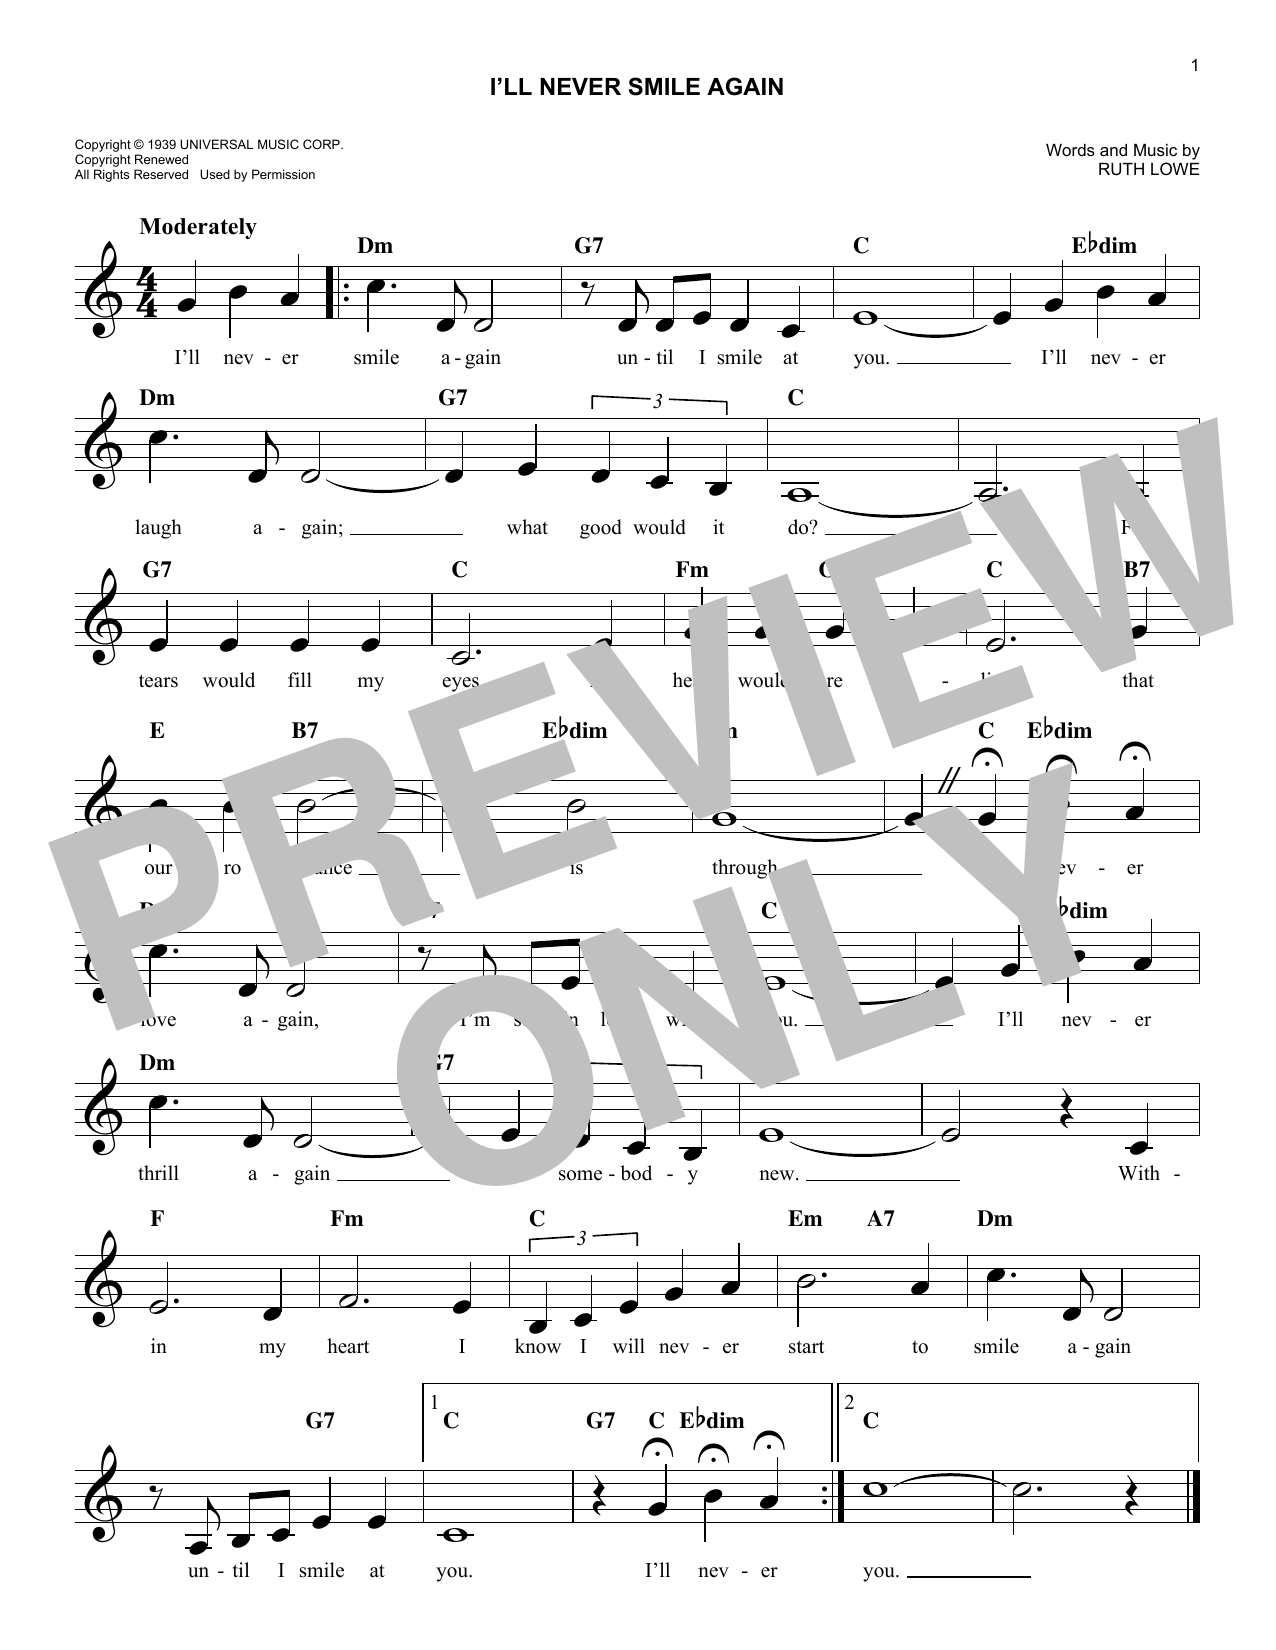 Ruth Lowe I'll Never Smile Again sheet music notes and chords. Download Printable PDF.